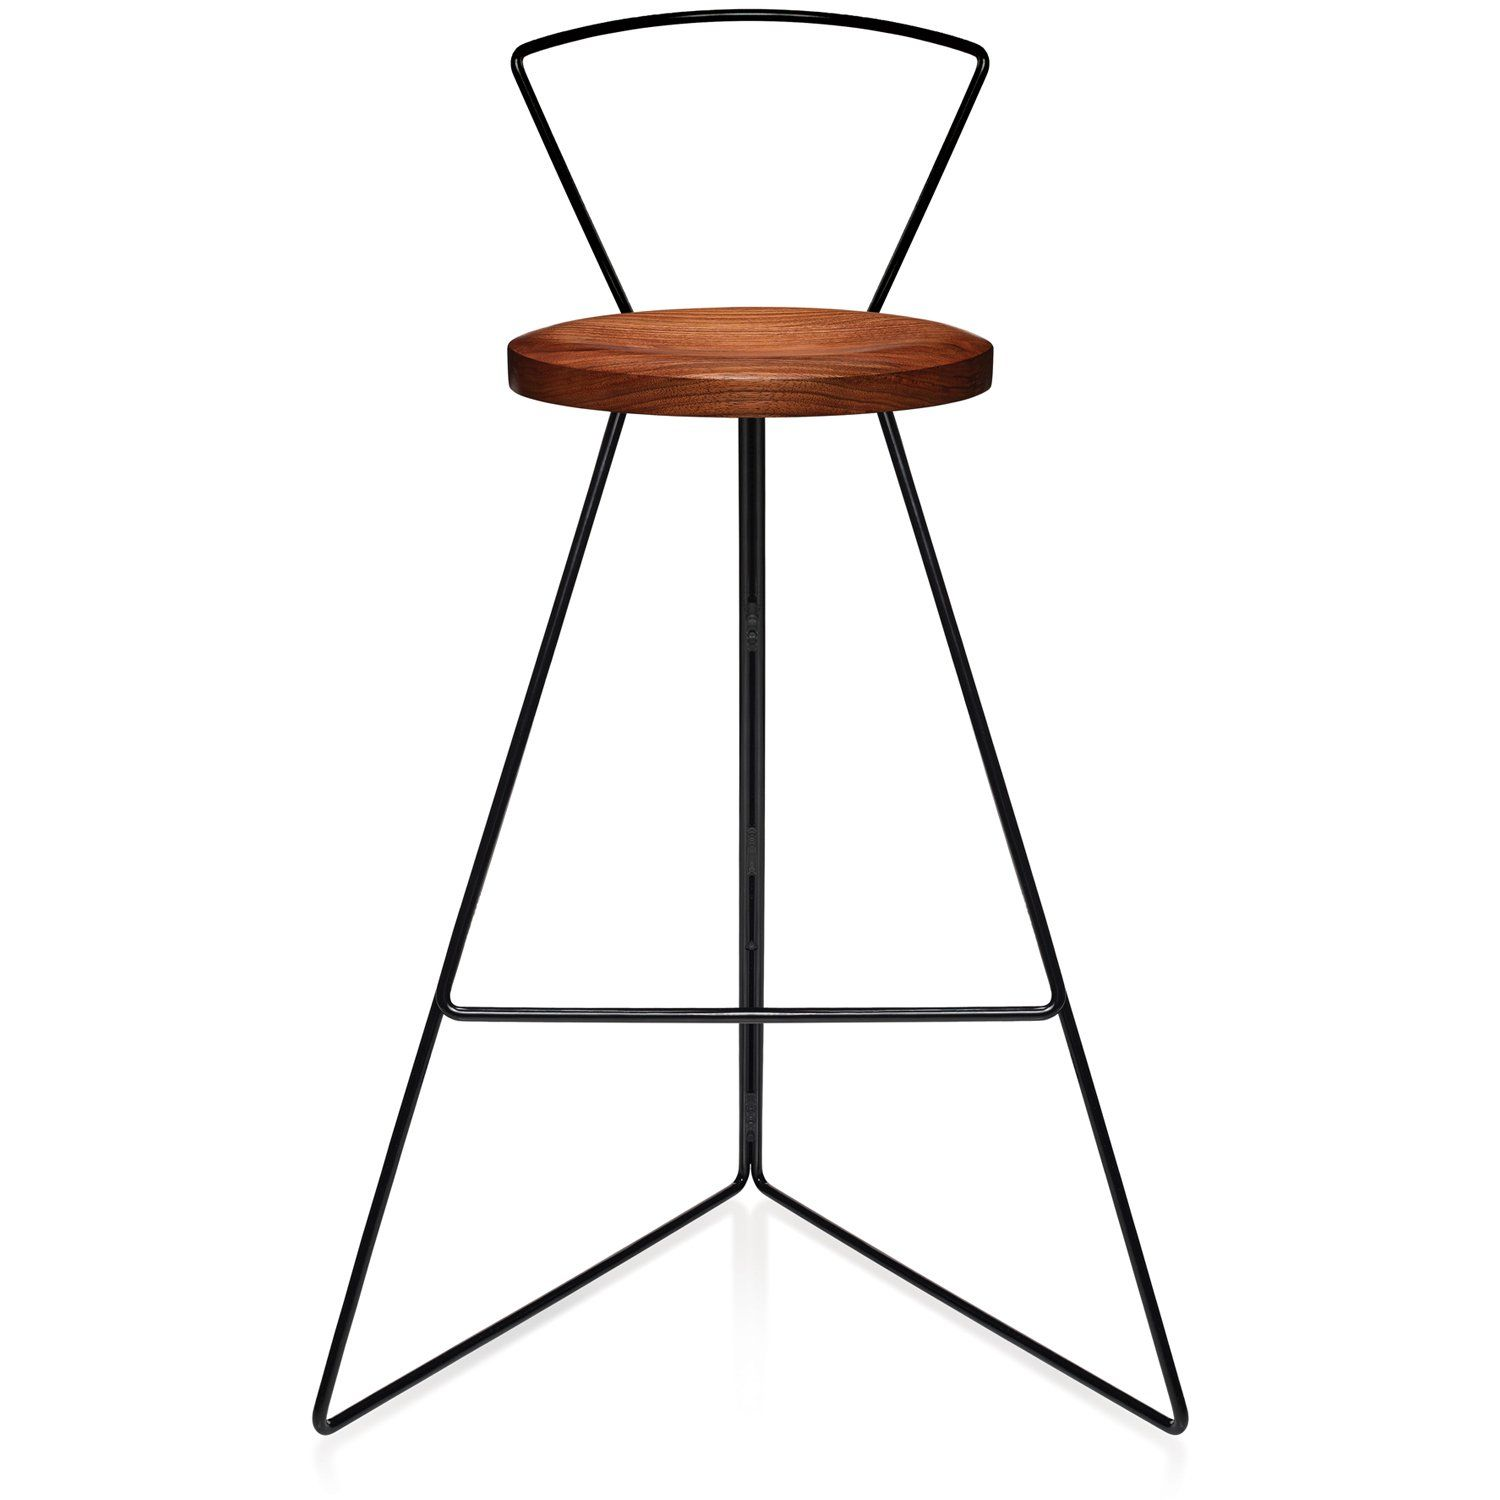 The Coleman Stool With Backrest Walnut In 2020 Furniture Design Modern Furniture Decor Stool